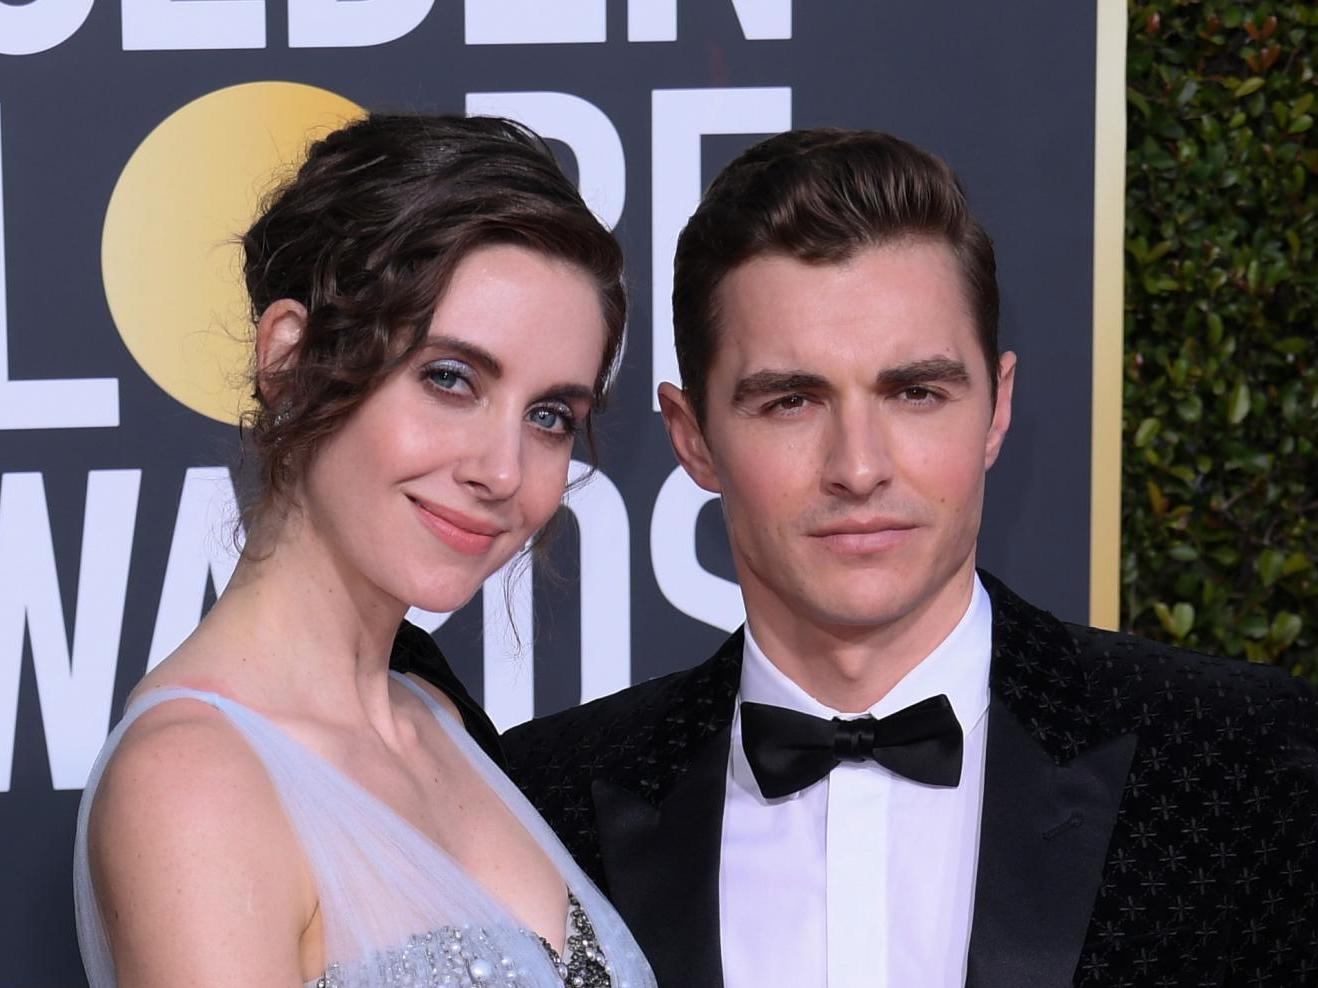 Alison Brie Shares Romantic Story Of How She Met Her Husband Dave Franco The Independent The Independent